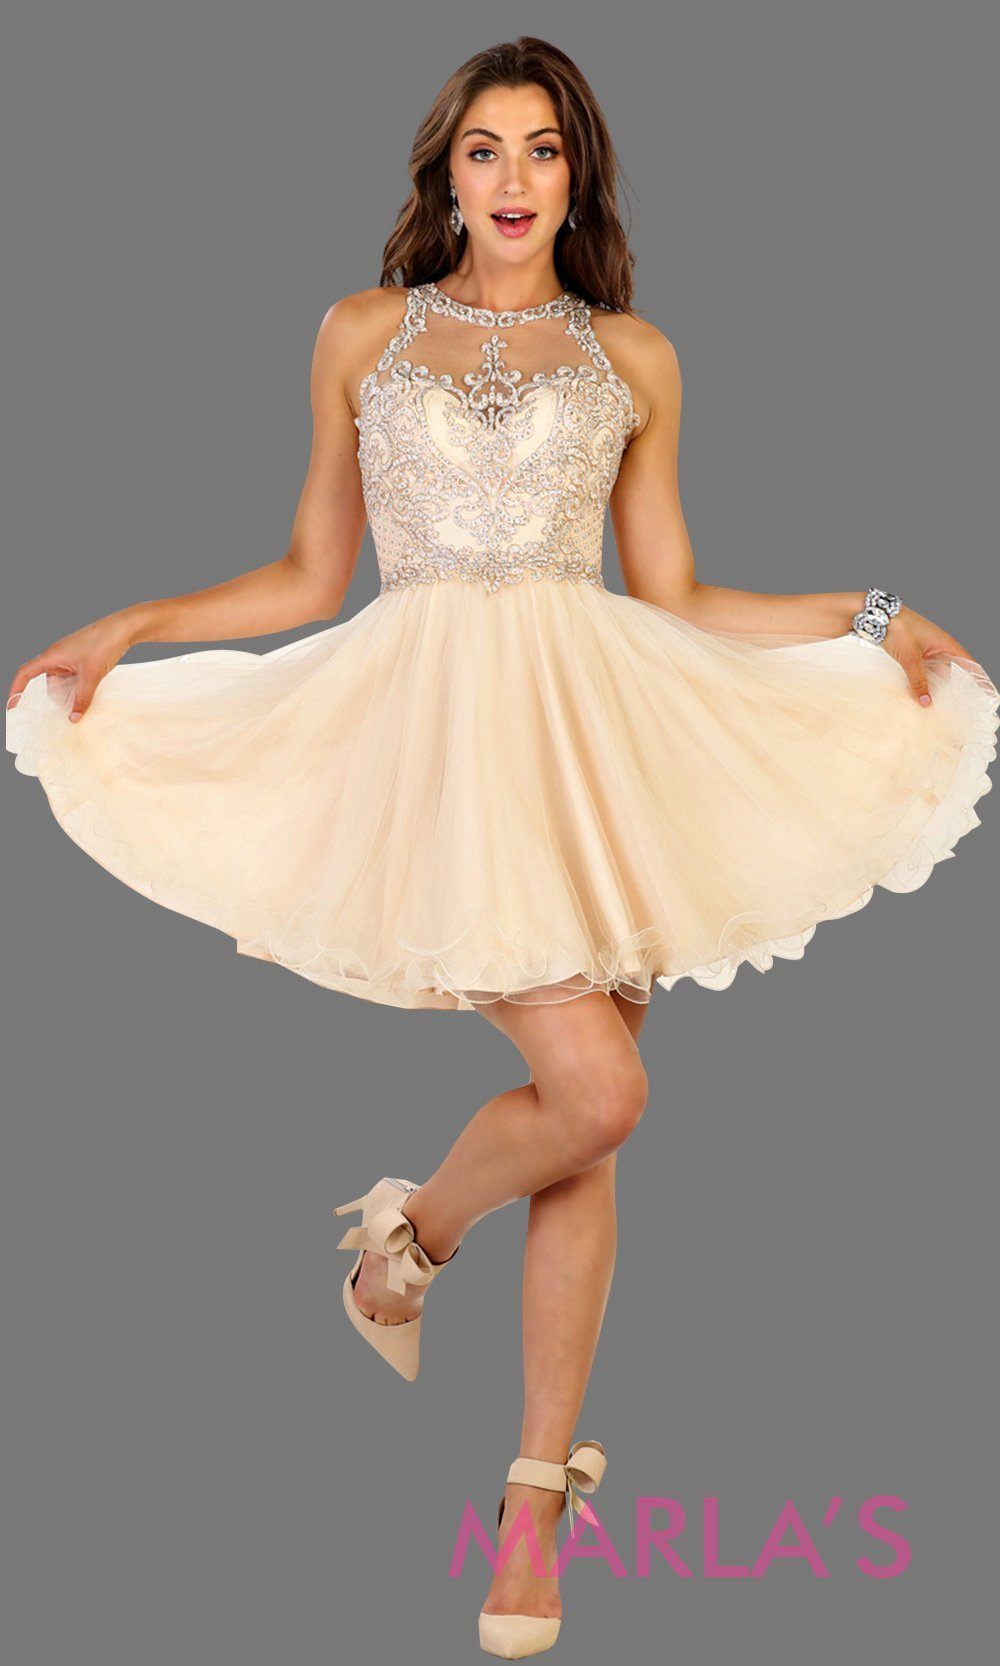 4e86134c5a Short high neck puffy champagne dress with lace top. Perfect for grade 8  grad